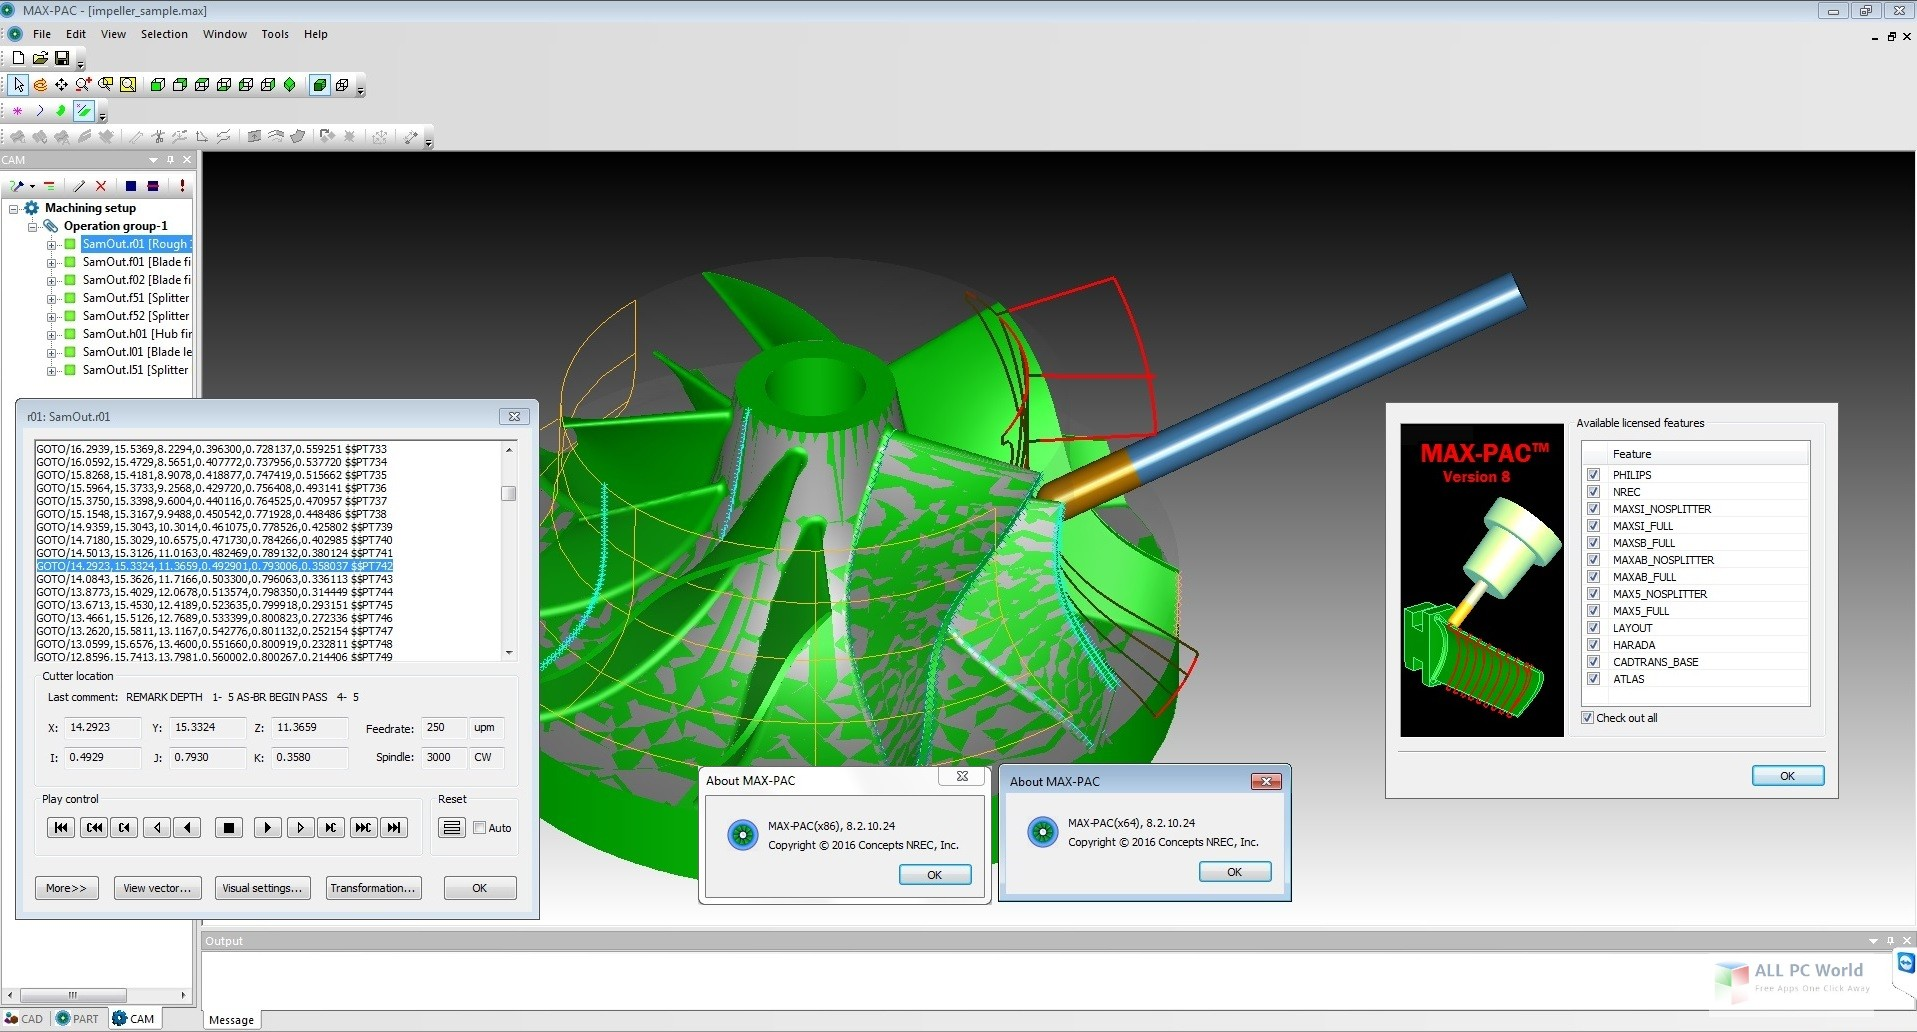 Programming with Concepts NREC MAX_PAC 8.7.8.0 Win64 full